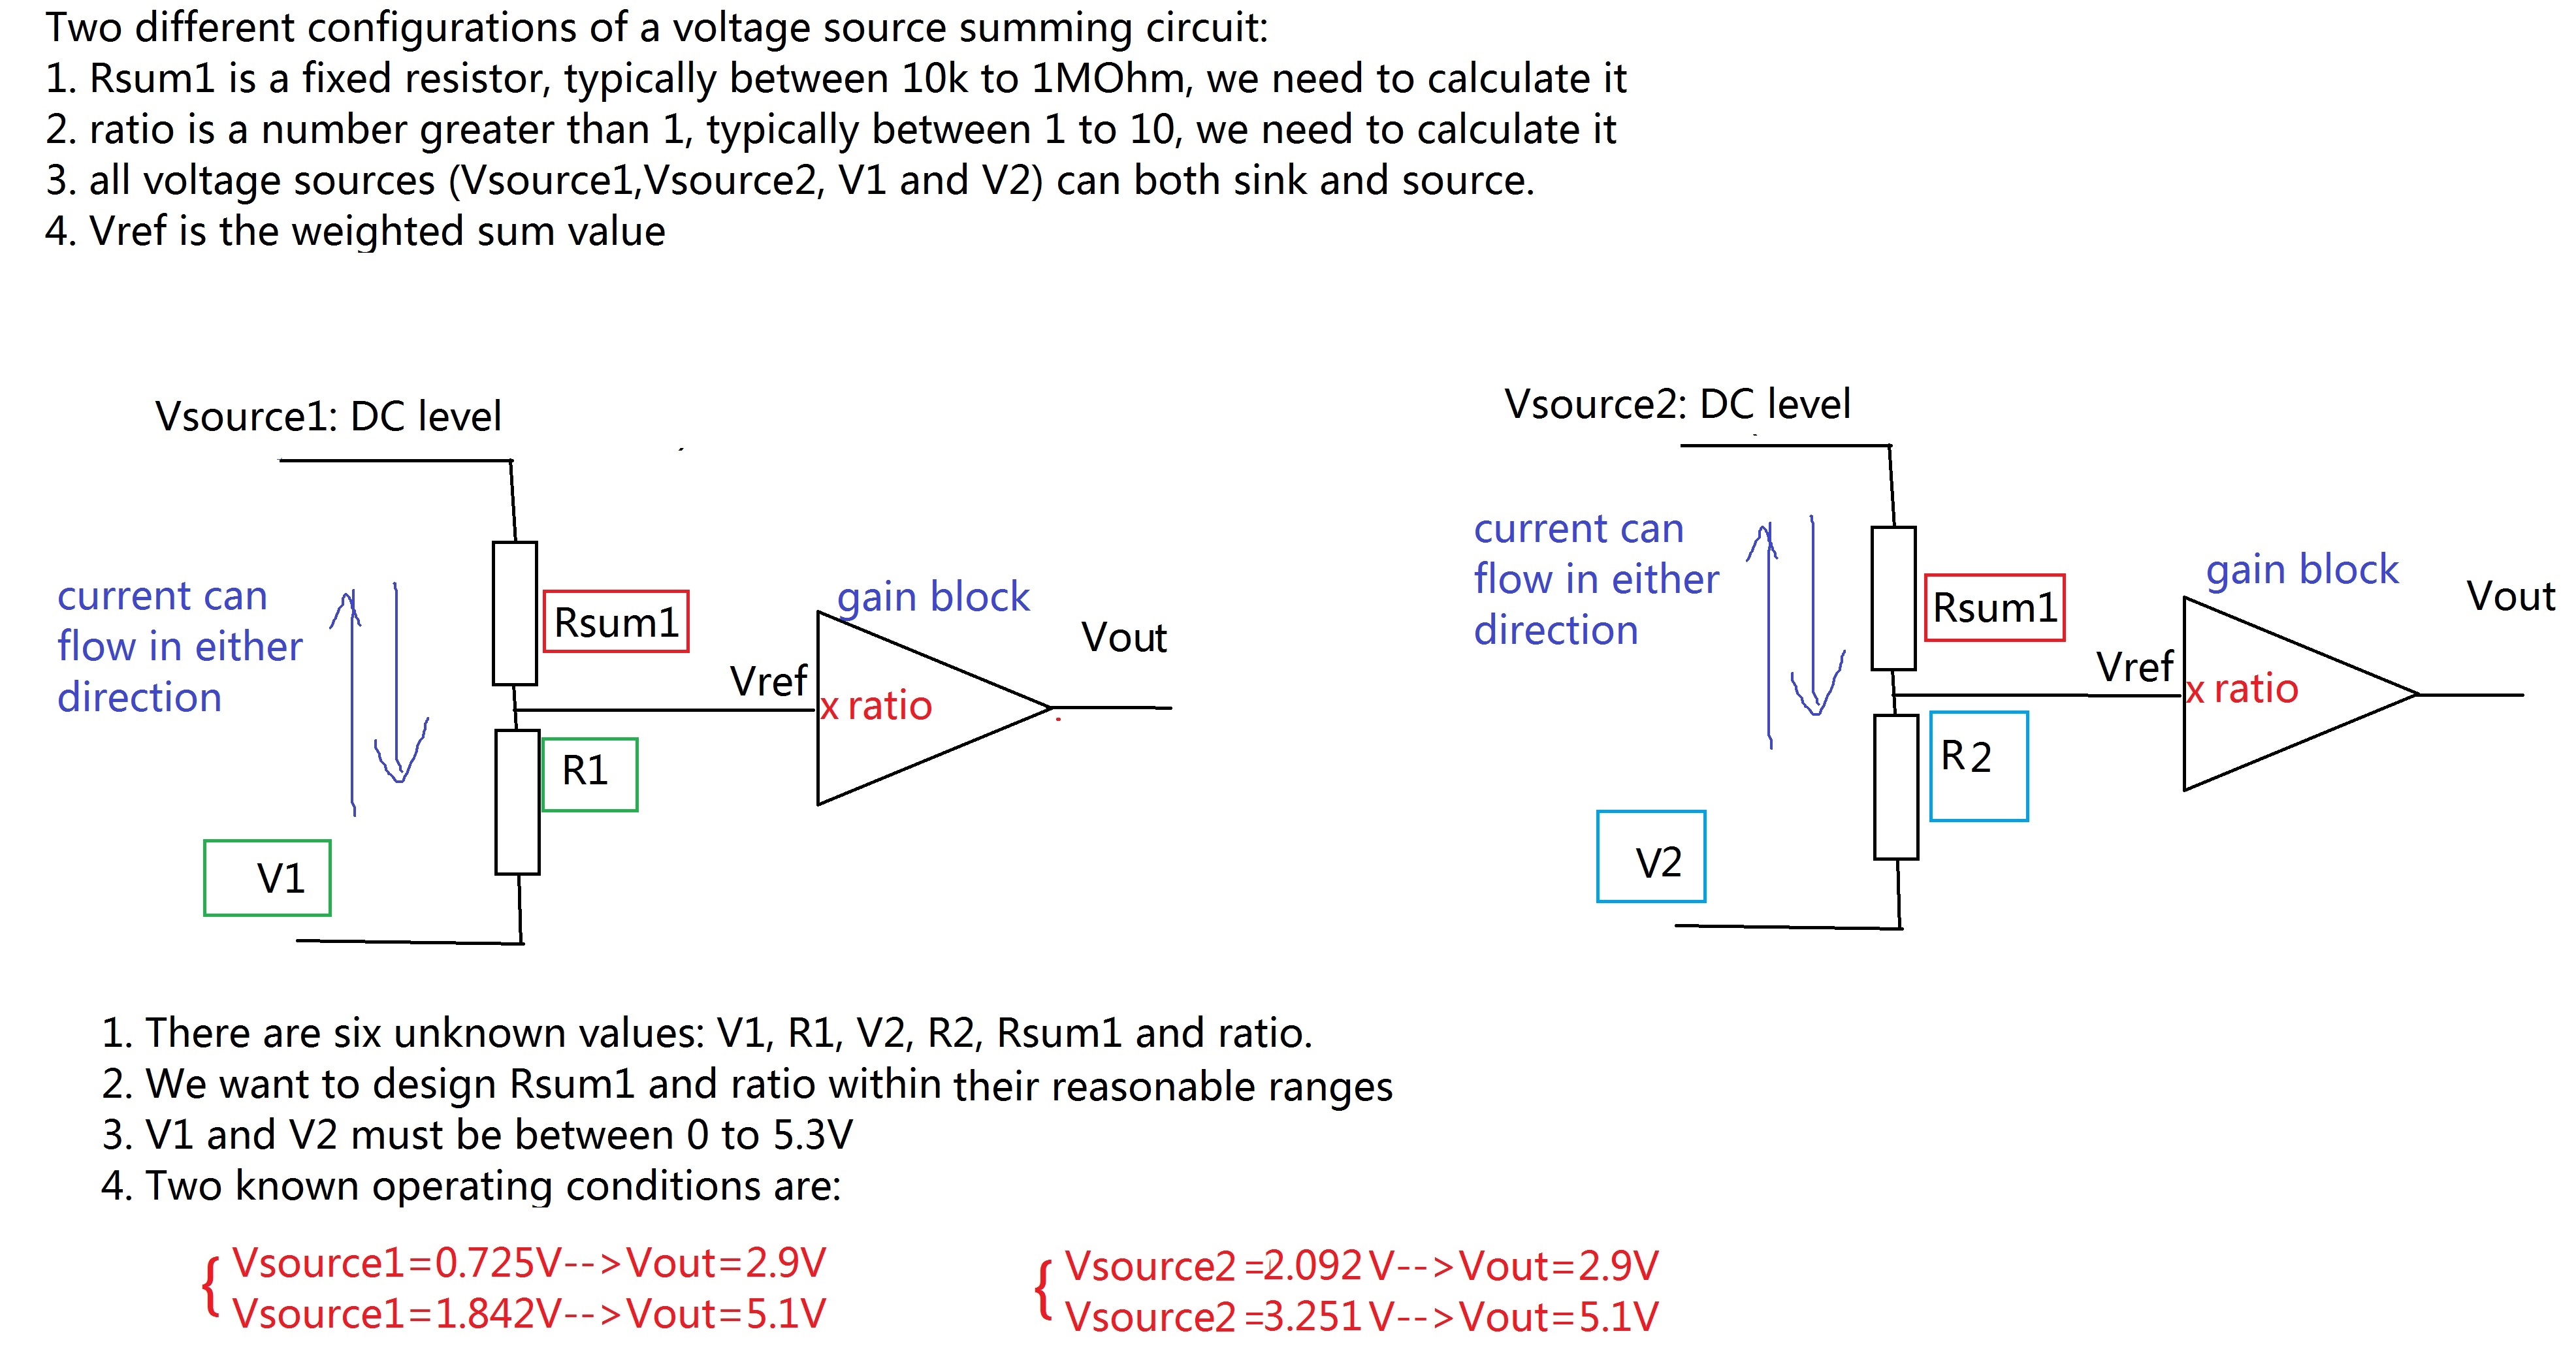 how to solve circuit diagrams 1993 ford f150 xl radio wiring diagram solved this simple voltage summing u ptc my target v1 v2 are within 0 5 3v and 10 ratio 1 all resistors should be between 10k 1m ohm right now i am not able use if